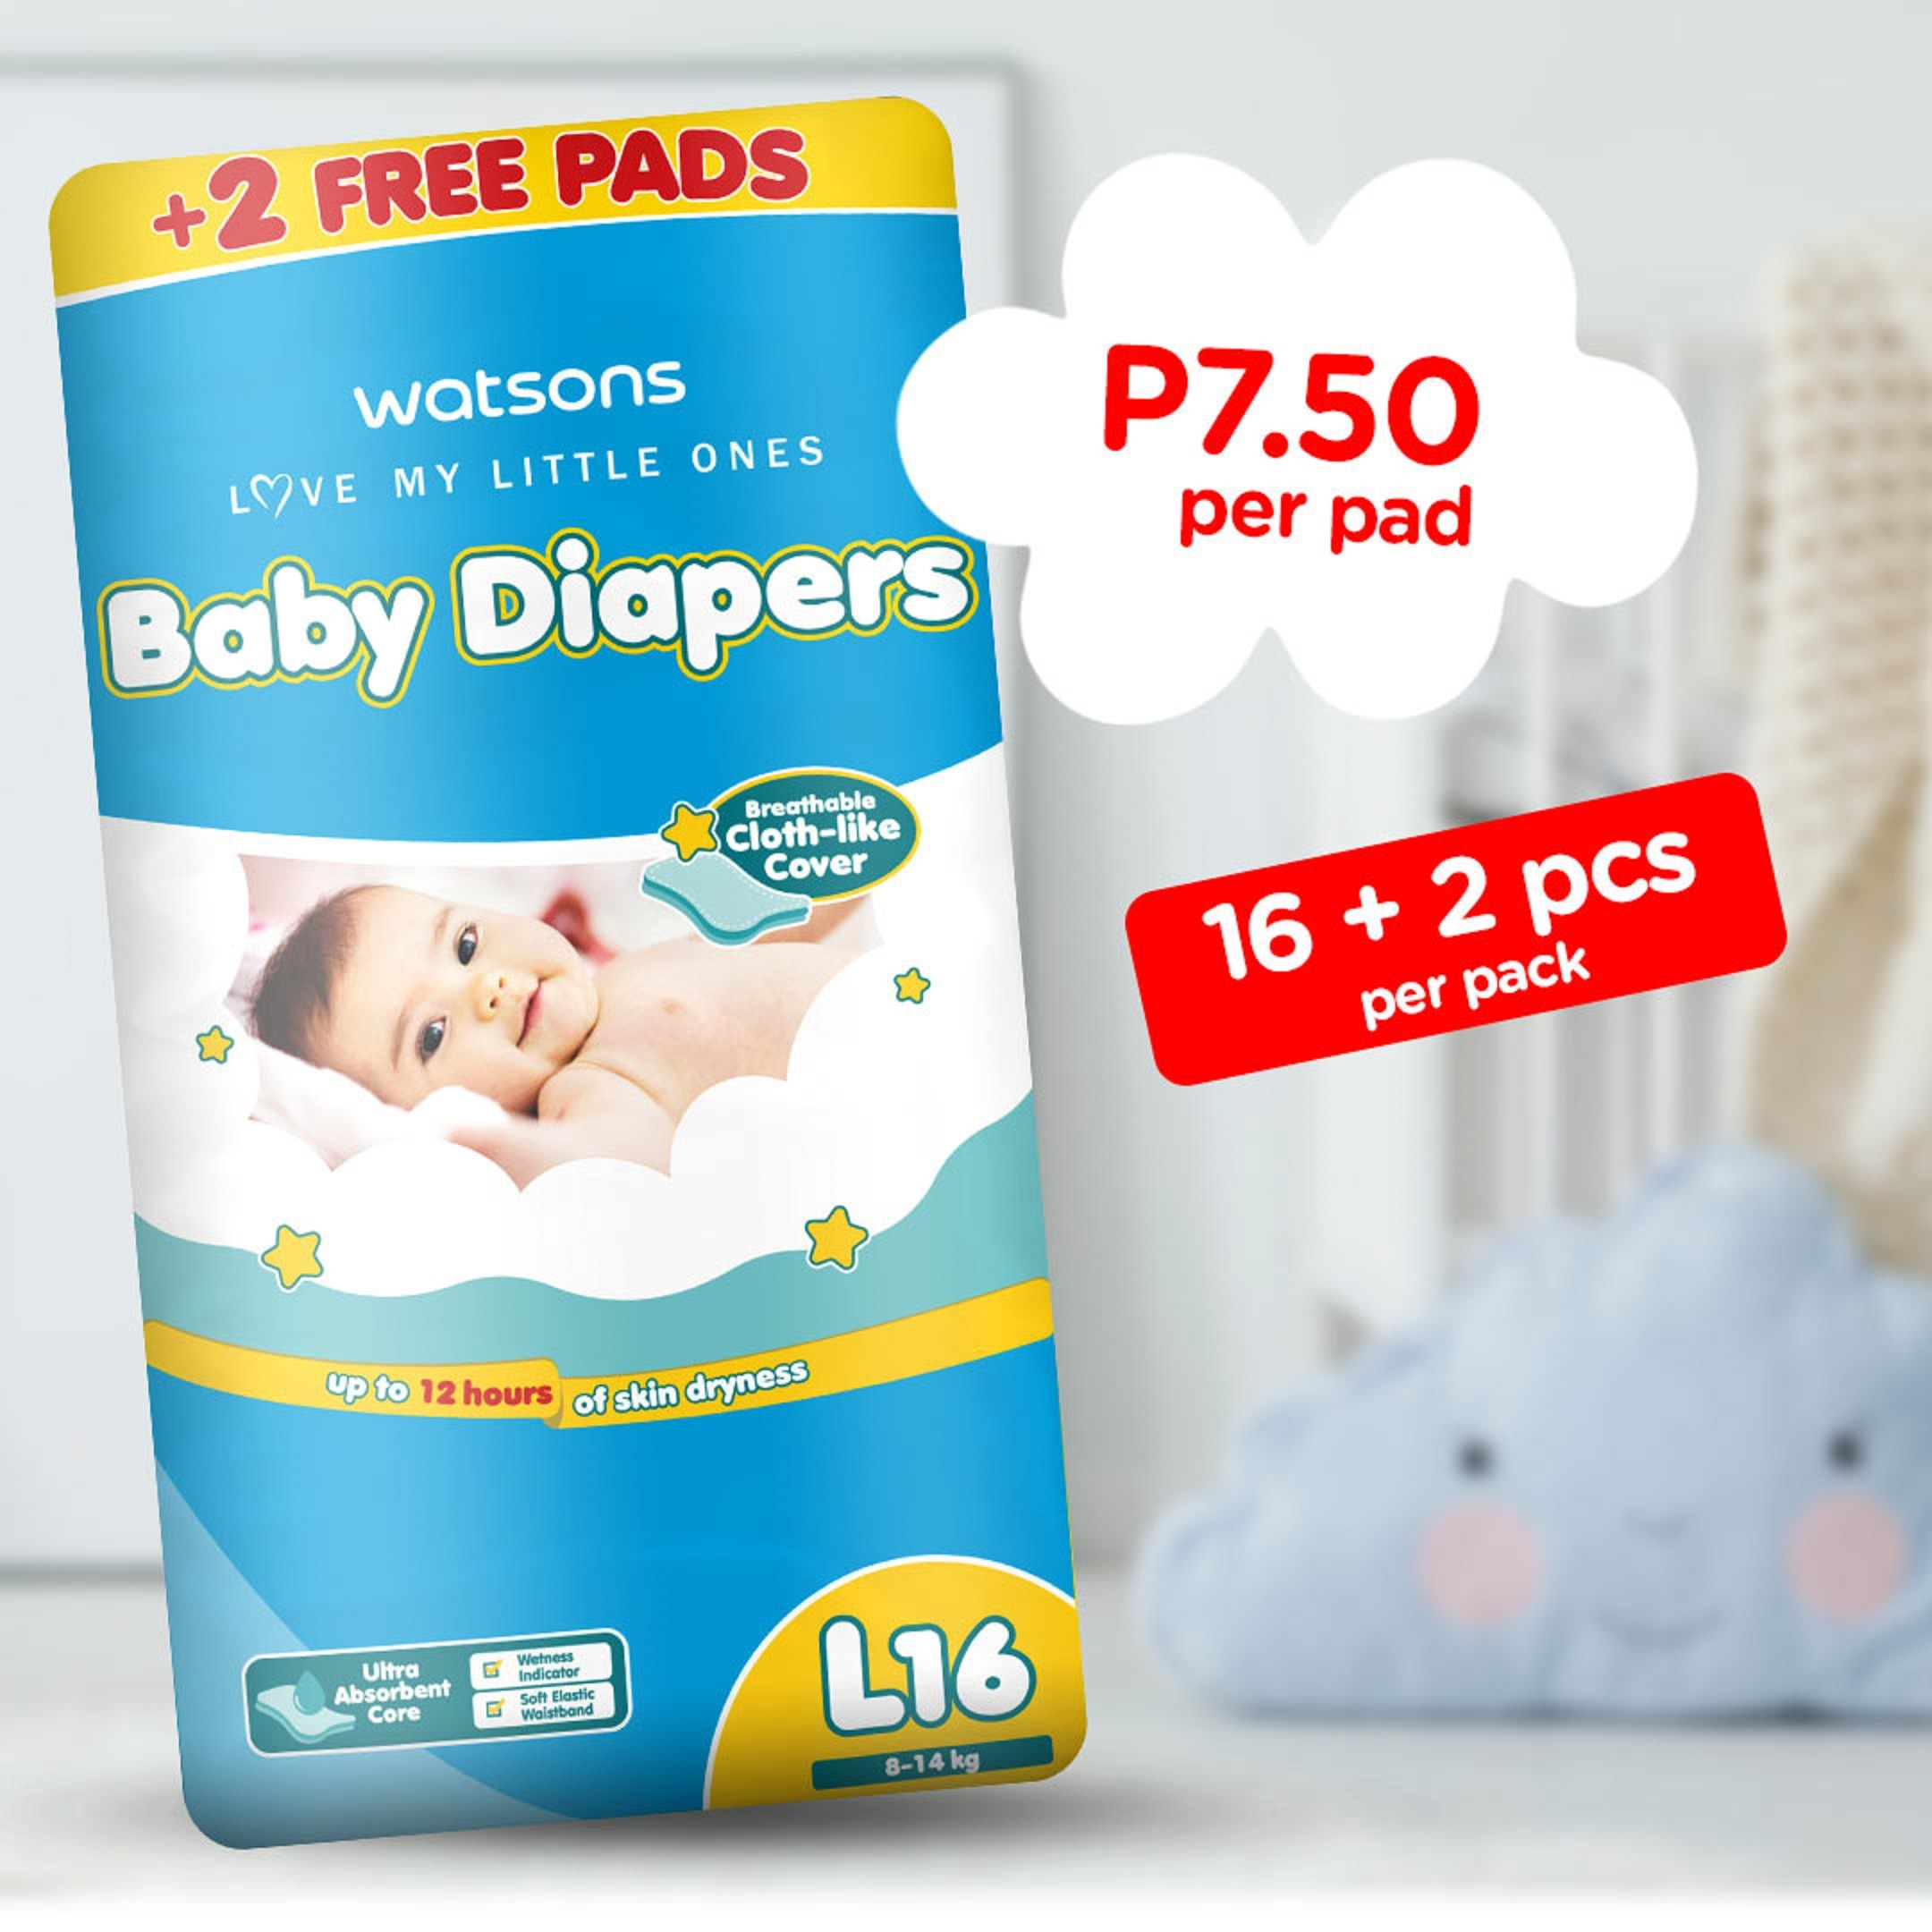 WATSONSLove My Little Ones Baby Diaper Large 16+2 Pads,Tape DiapersWatsons Baby